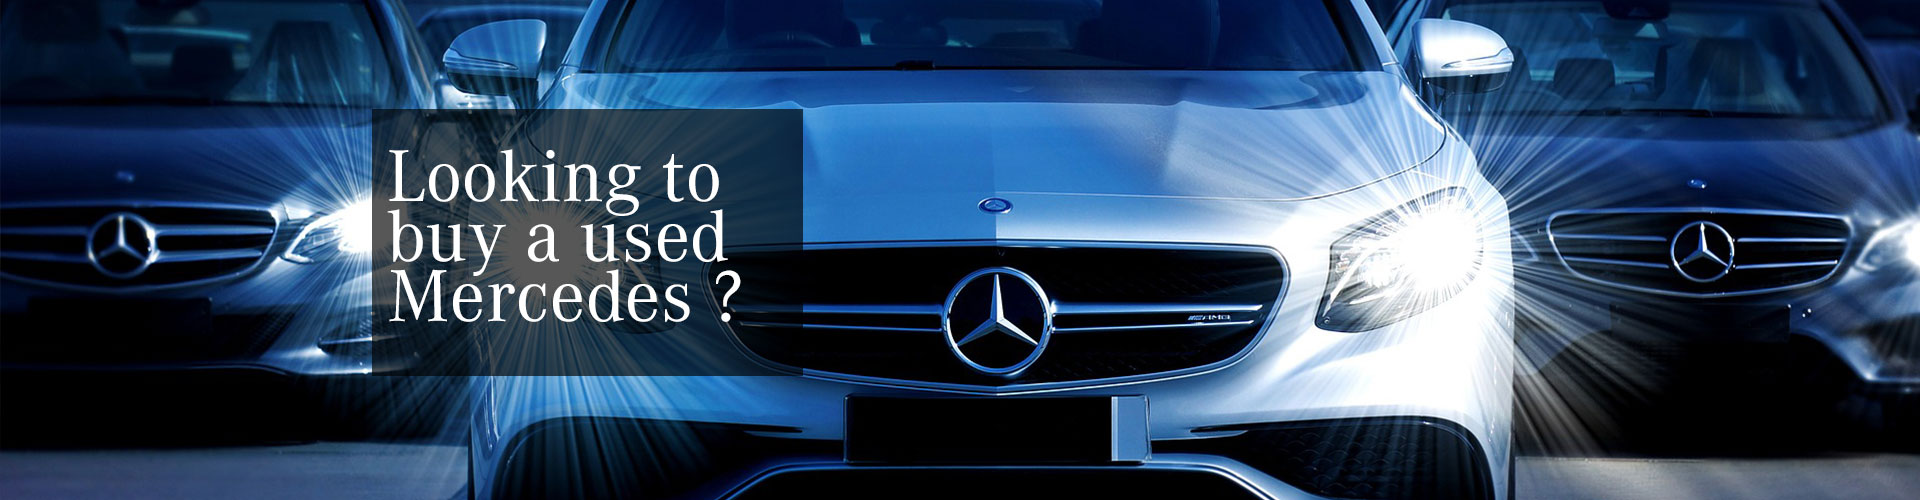 Looking to buy a Used Mercedes Benz we can help you